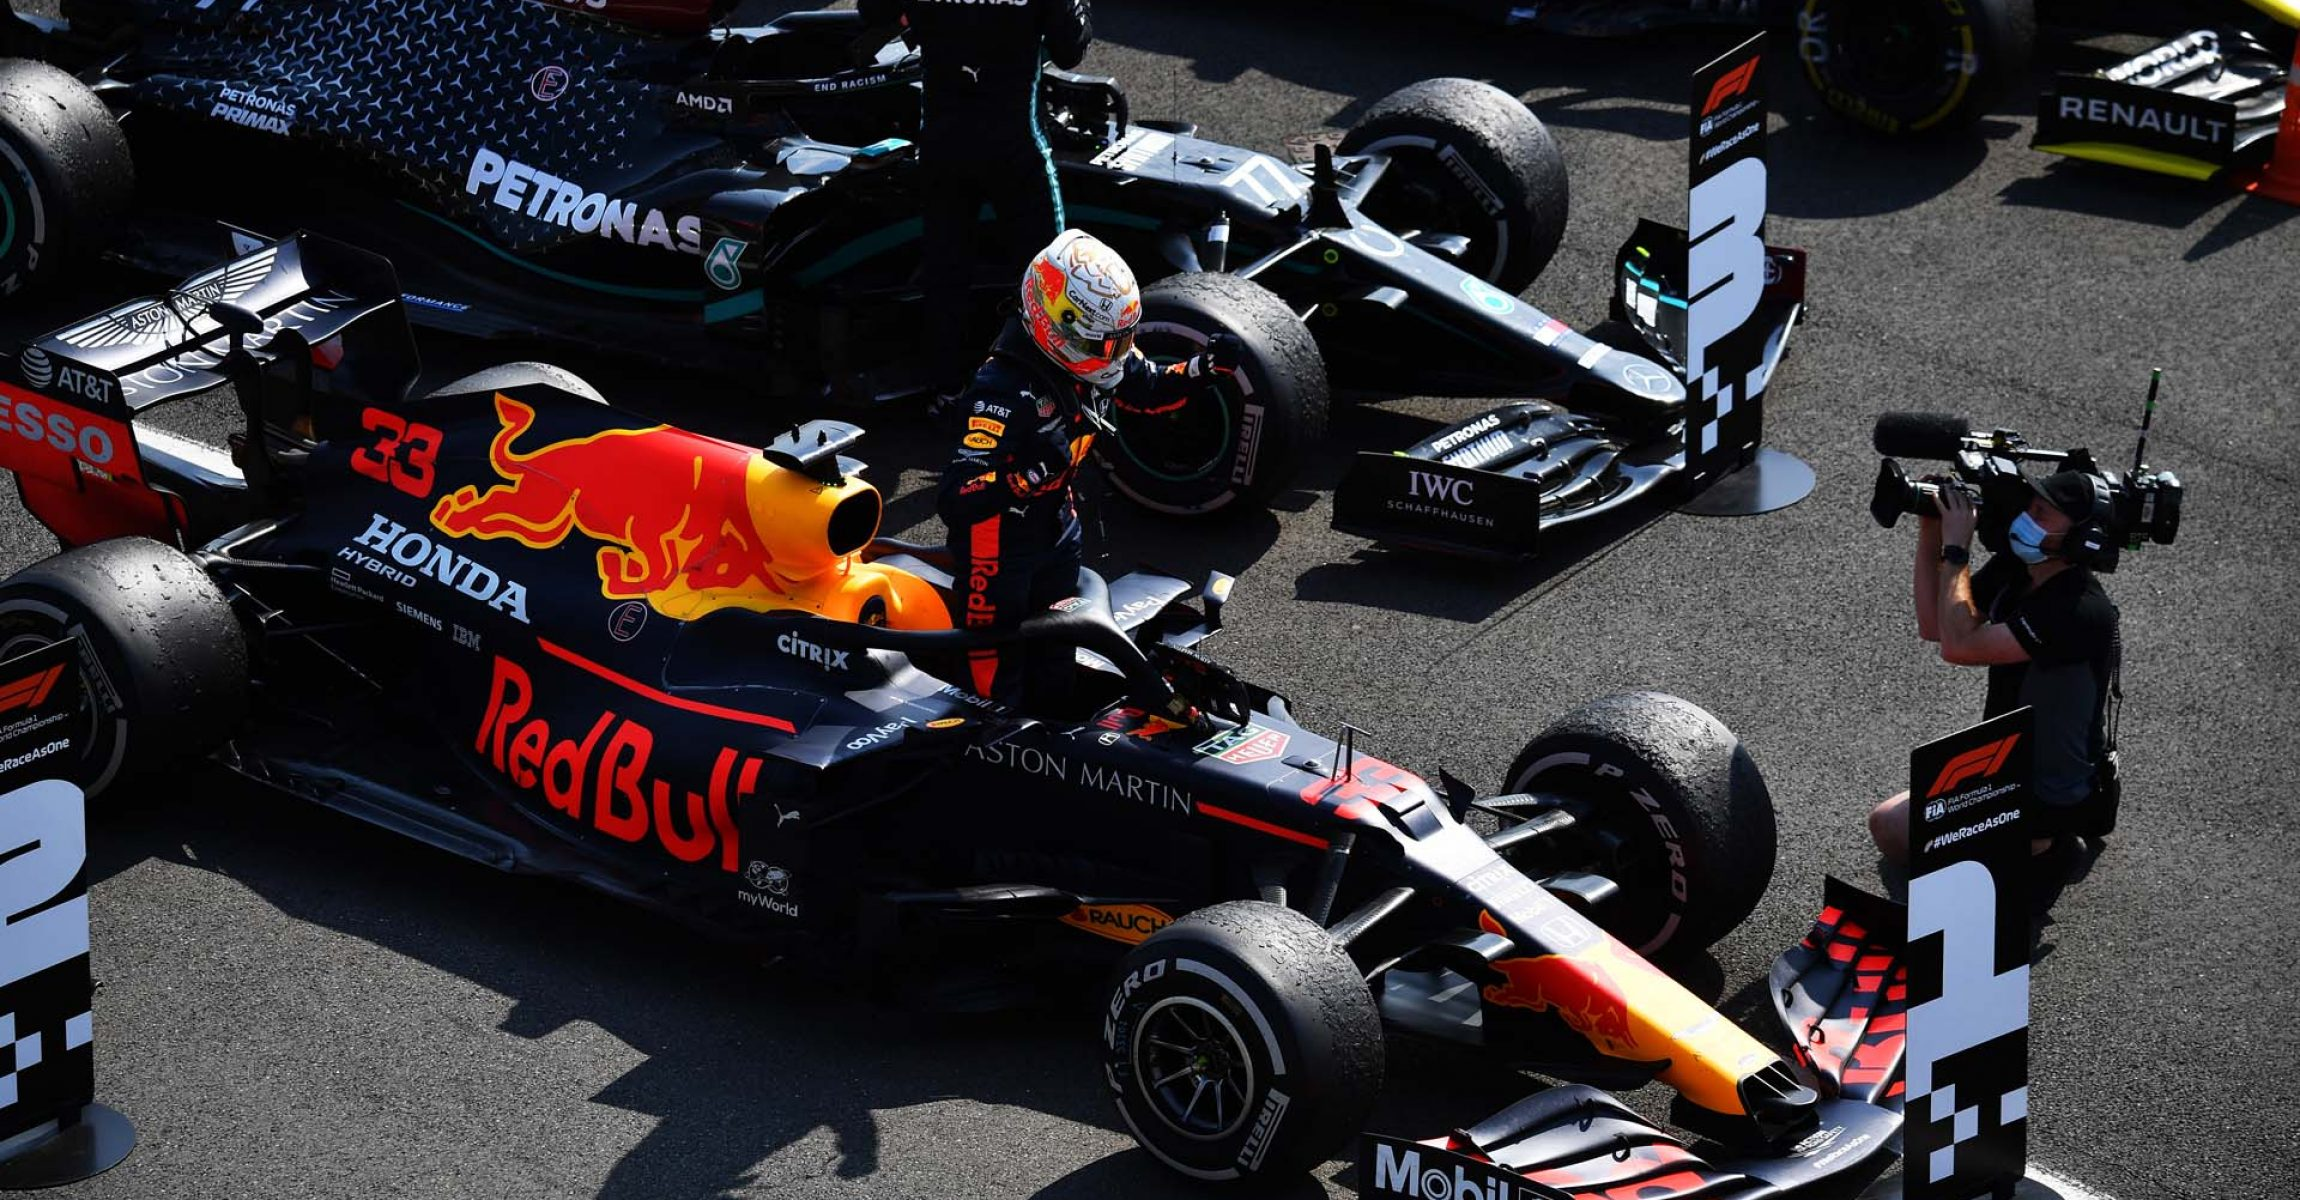 NORTHAMPTON, ENGLAND - AUGUST 09: Race winner Max Verstappen of Netherlands and Red Bull Racing celebrates in parc ferme during the F1 70th Anniversary Grand Prix at Silverstone on August 09, 2020 in Northampton, England. (Photo by Ben Stansall/Pool via Getty Images)